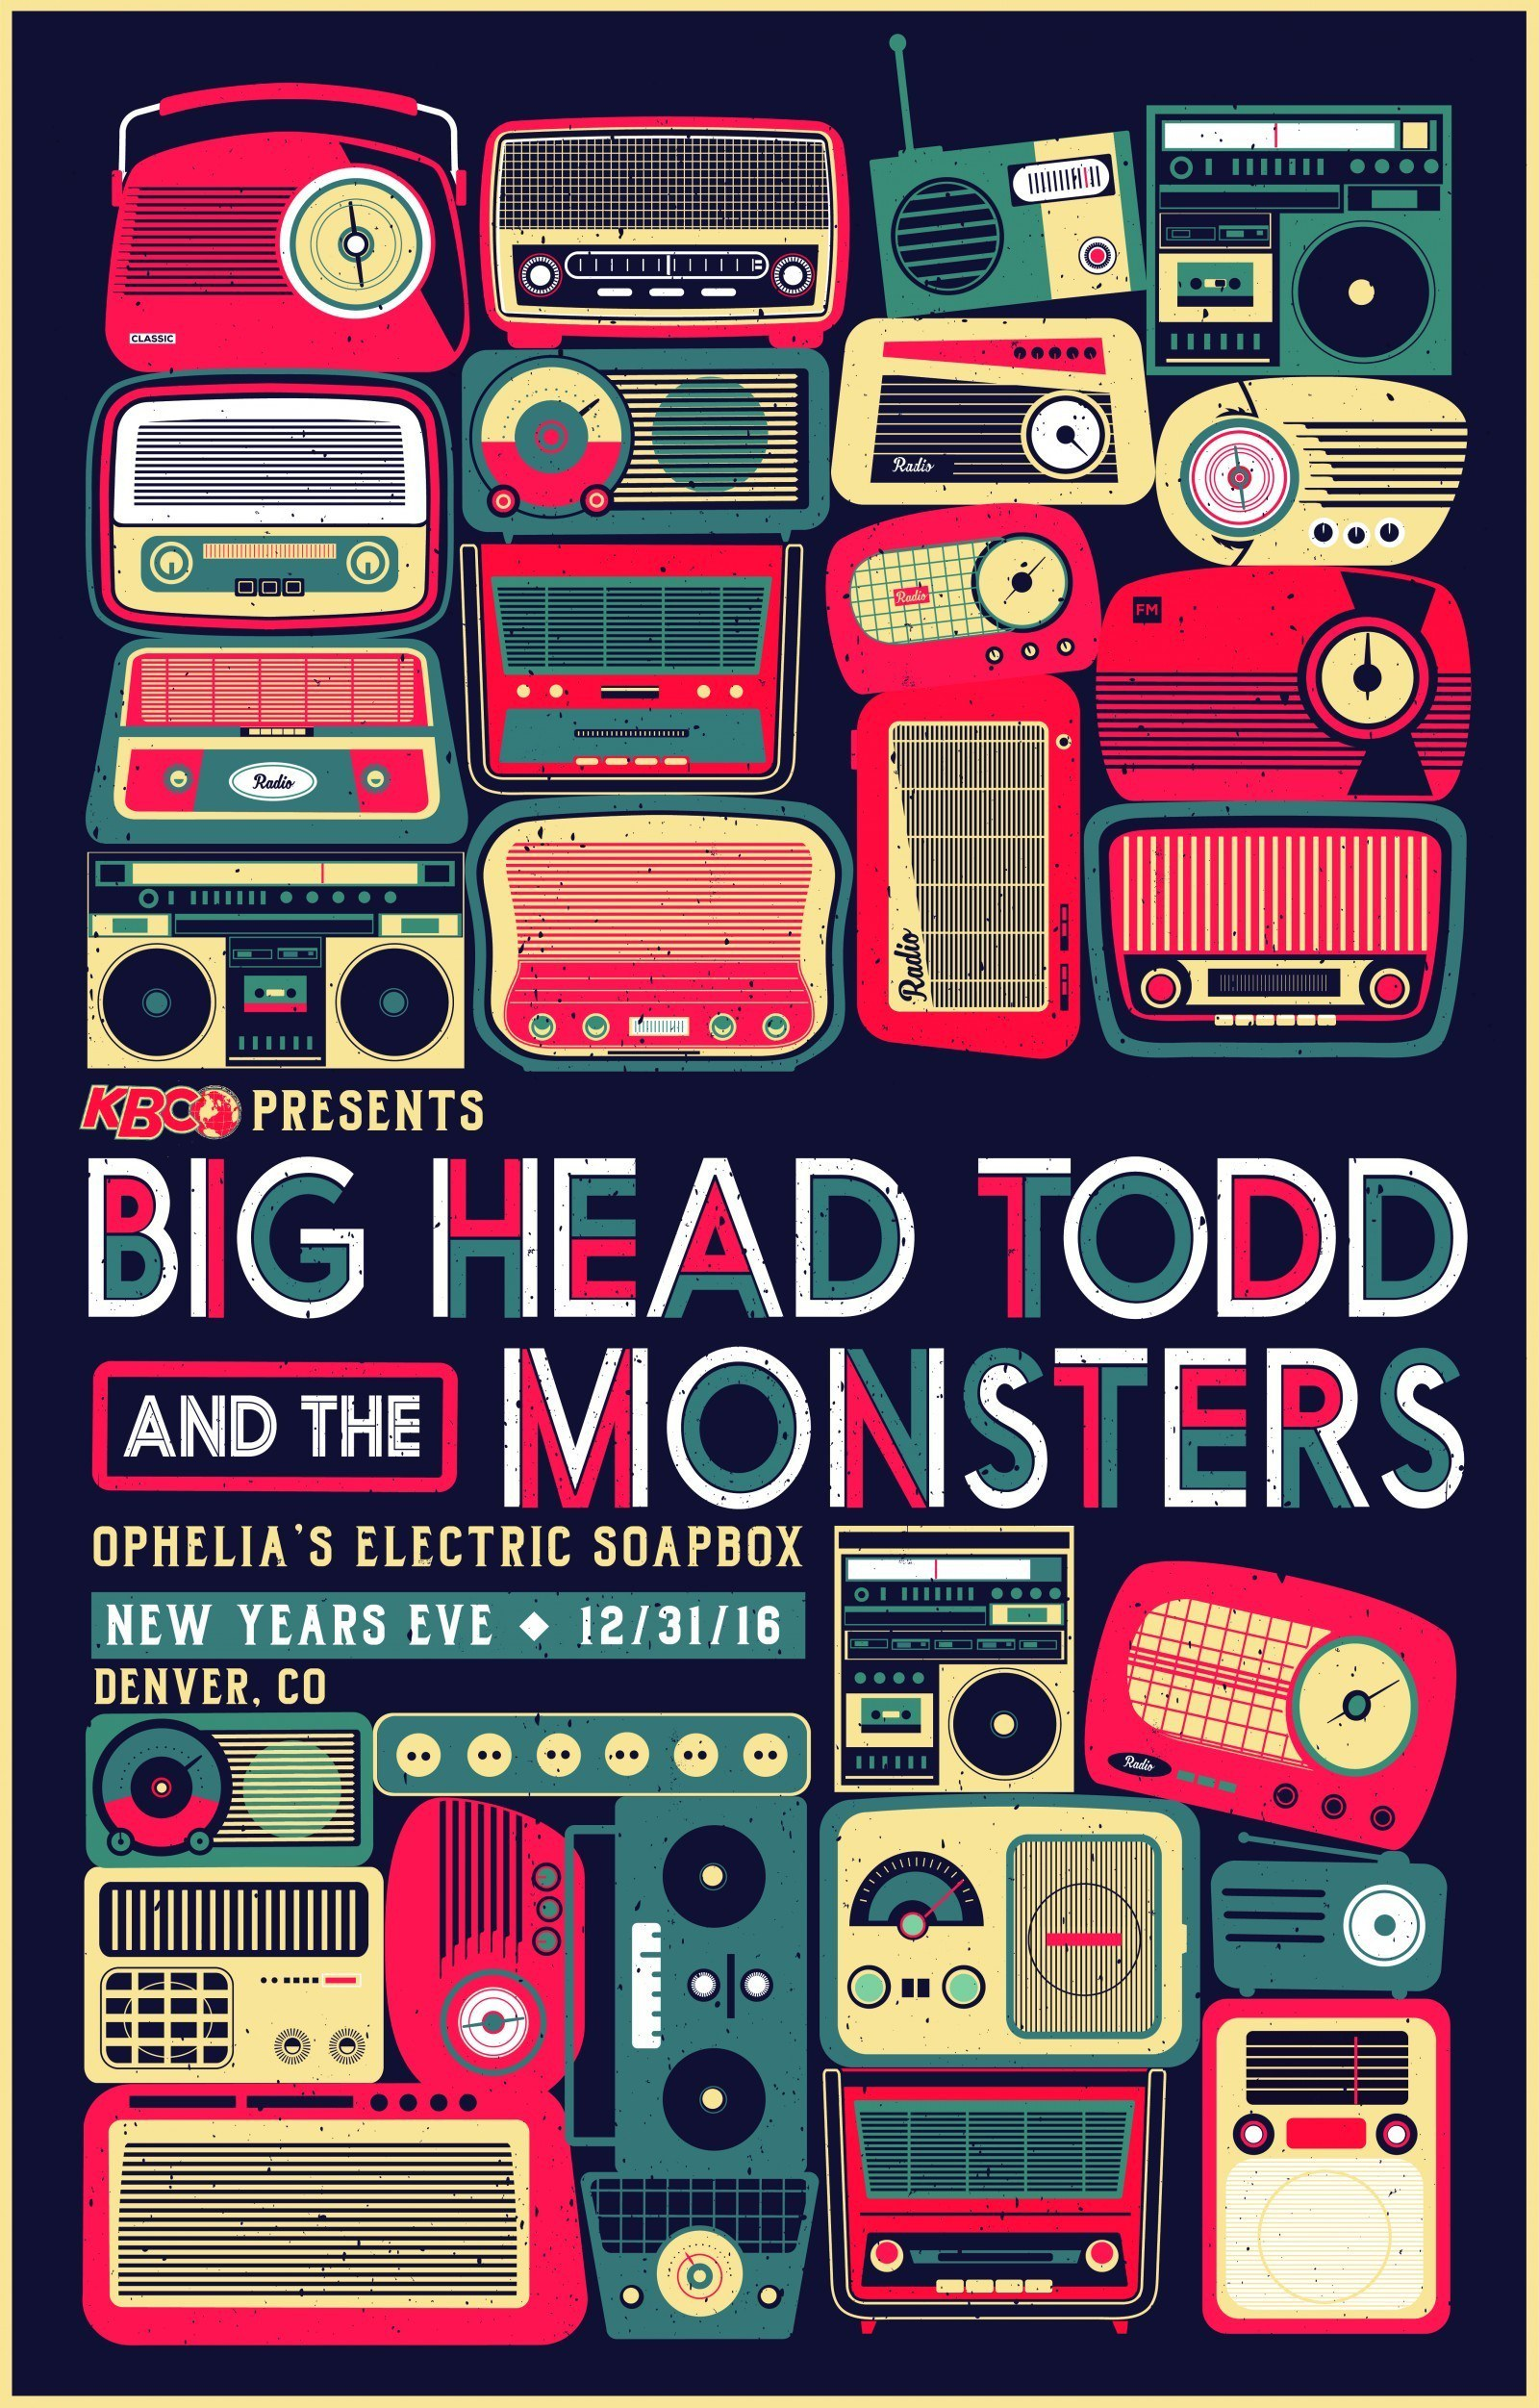 Big Head Todd & The Monsters NYE Fan Discount at Marriott Denver